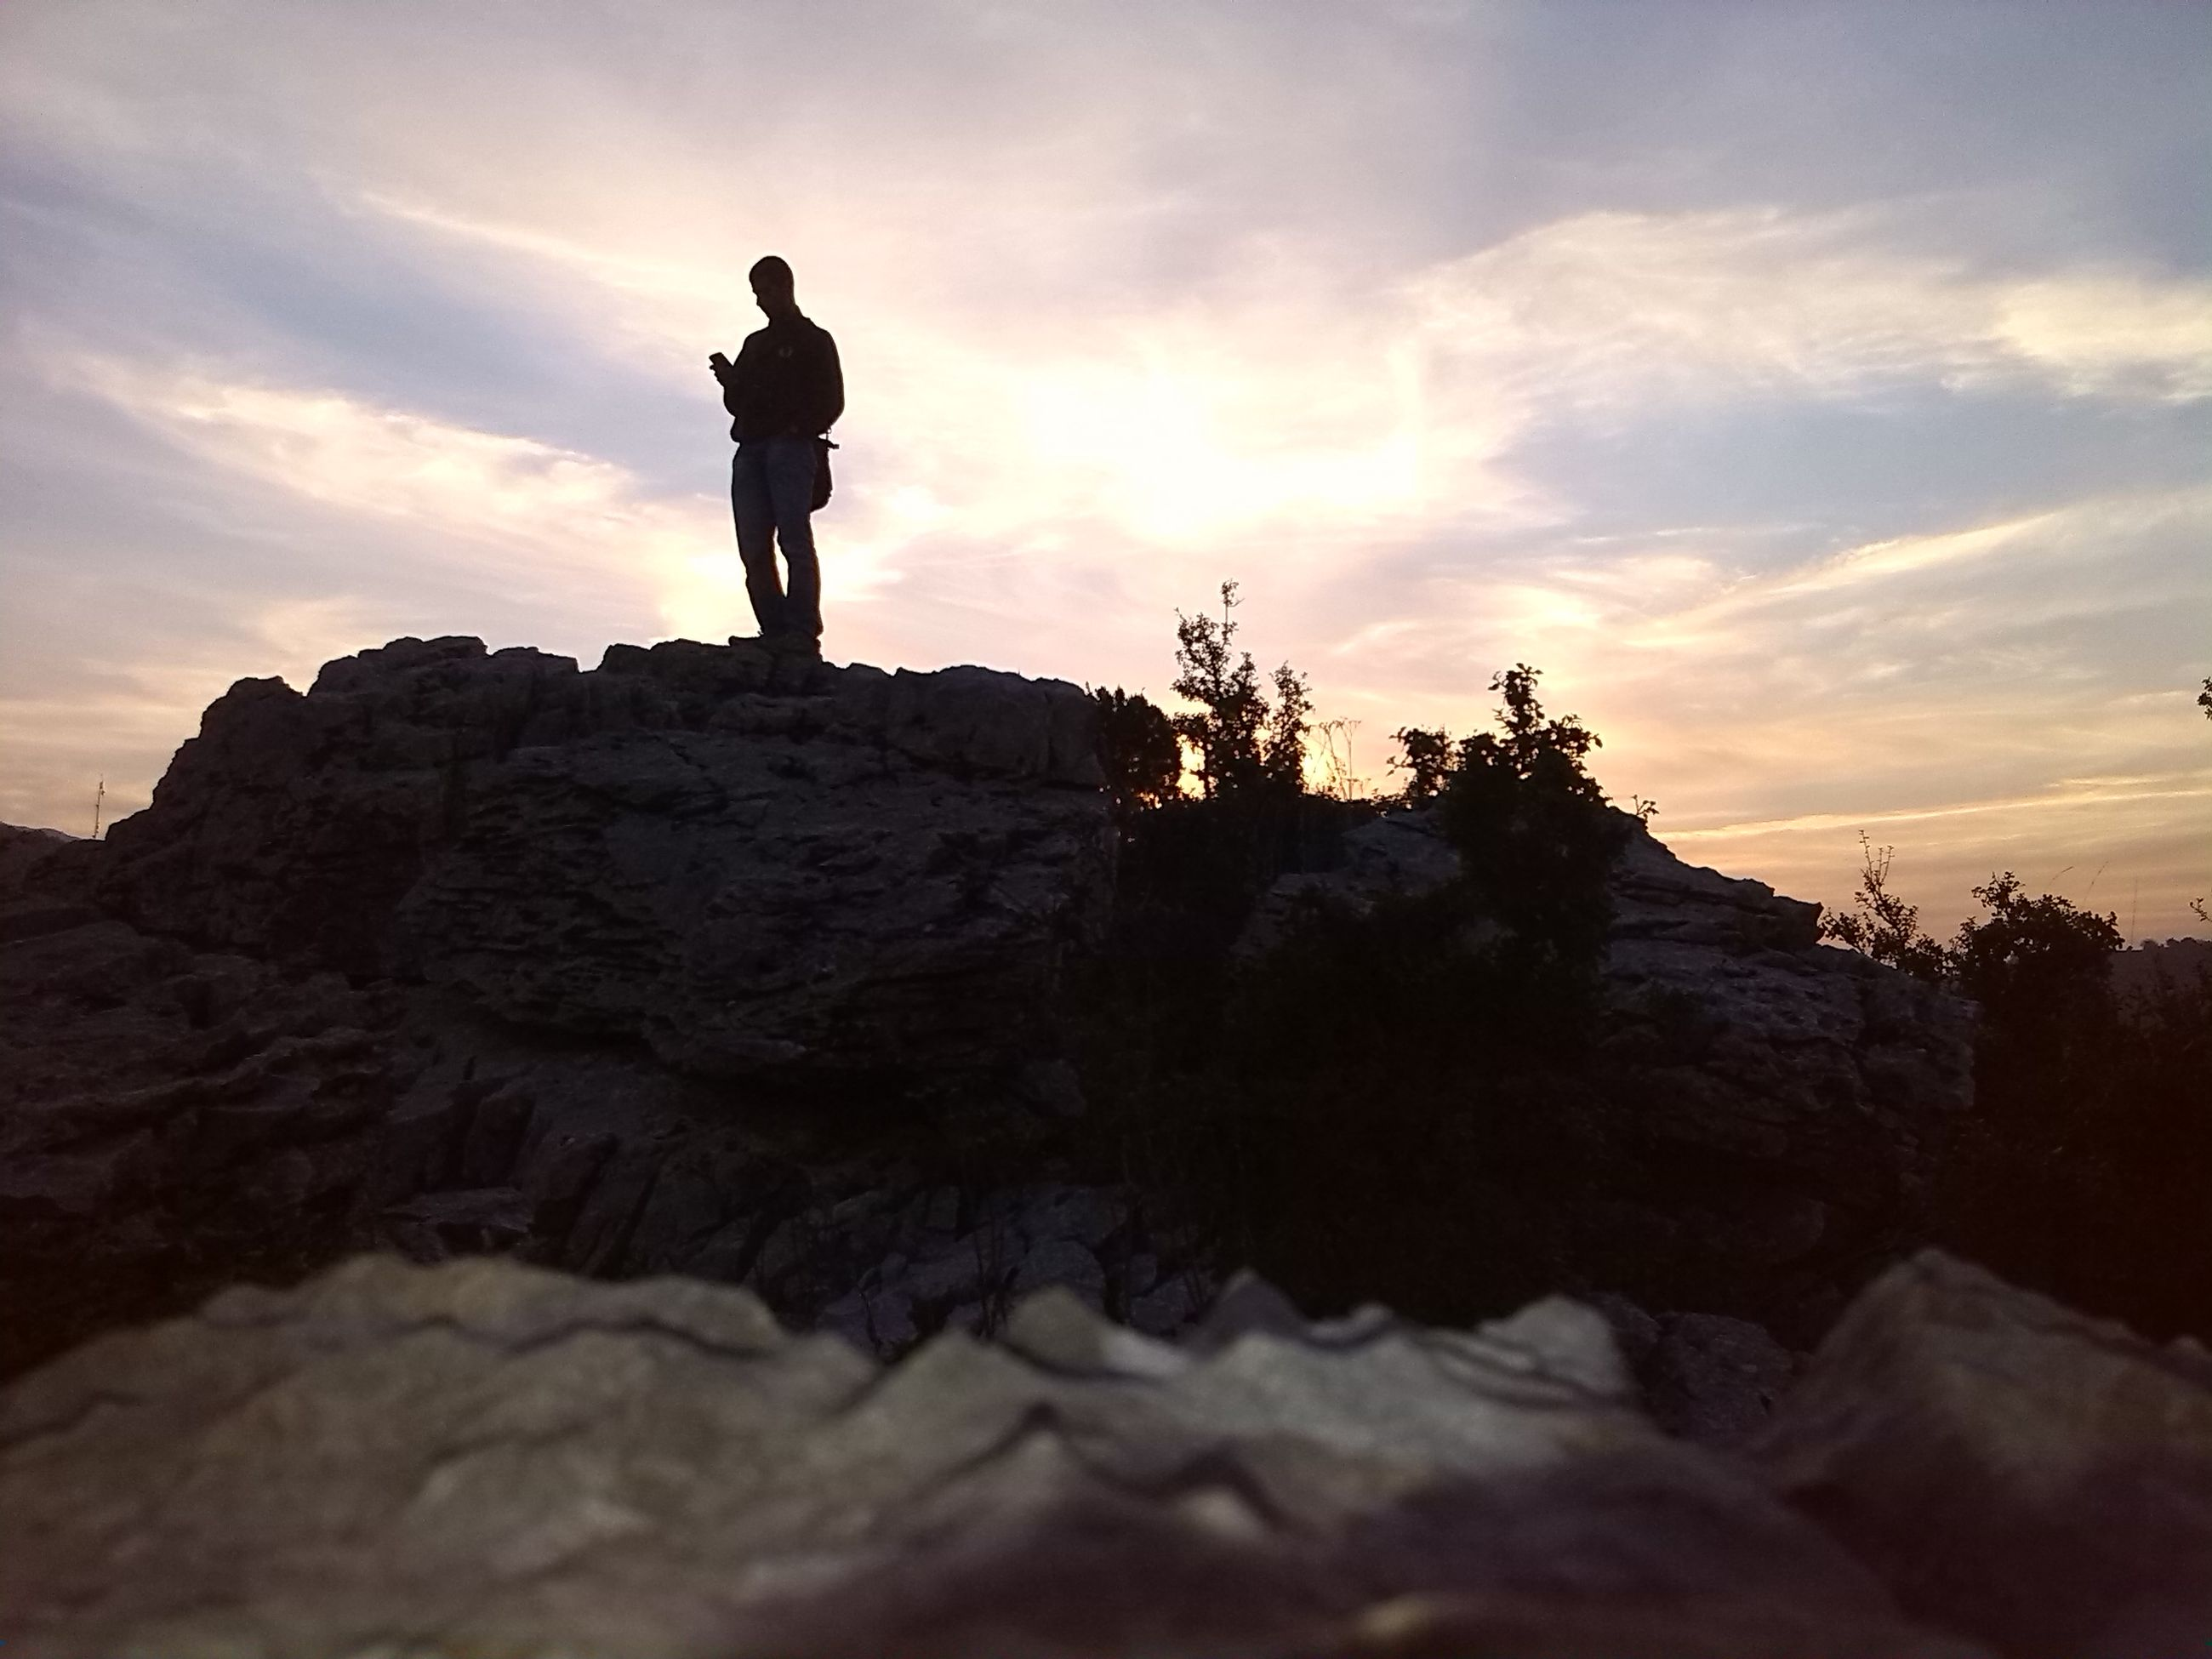 sky, silhouette, lifestyles, rock - object, leisure activity, standing, full length, cloud - sky, sunset, low angle view, men, tranquil scene, rock formation, tranquility, nature, scenics, cloud, beauty in nature